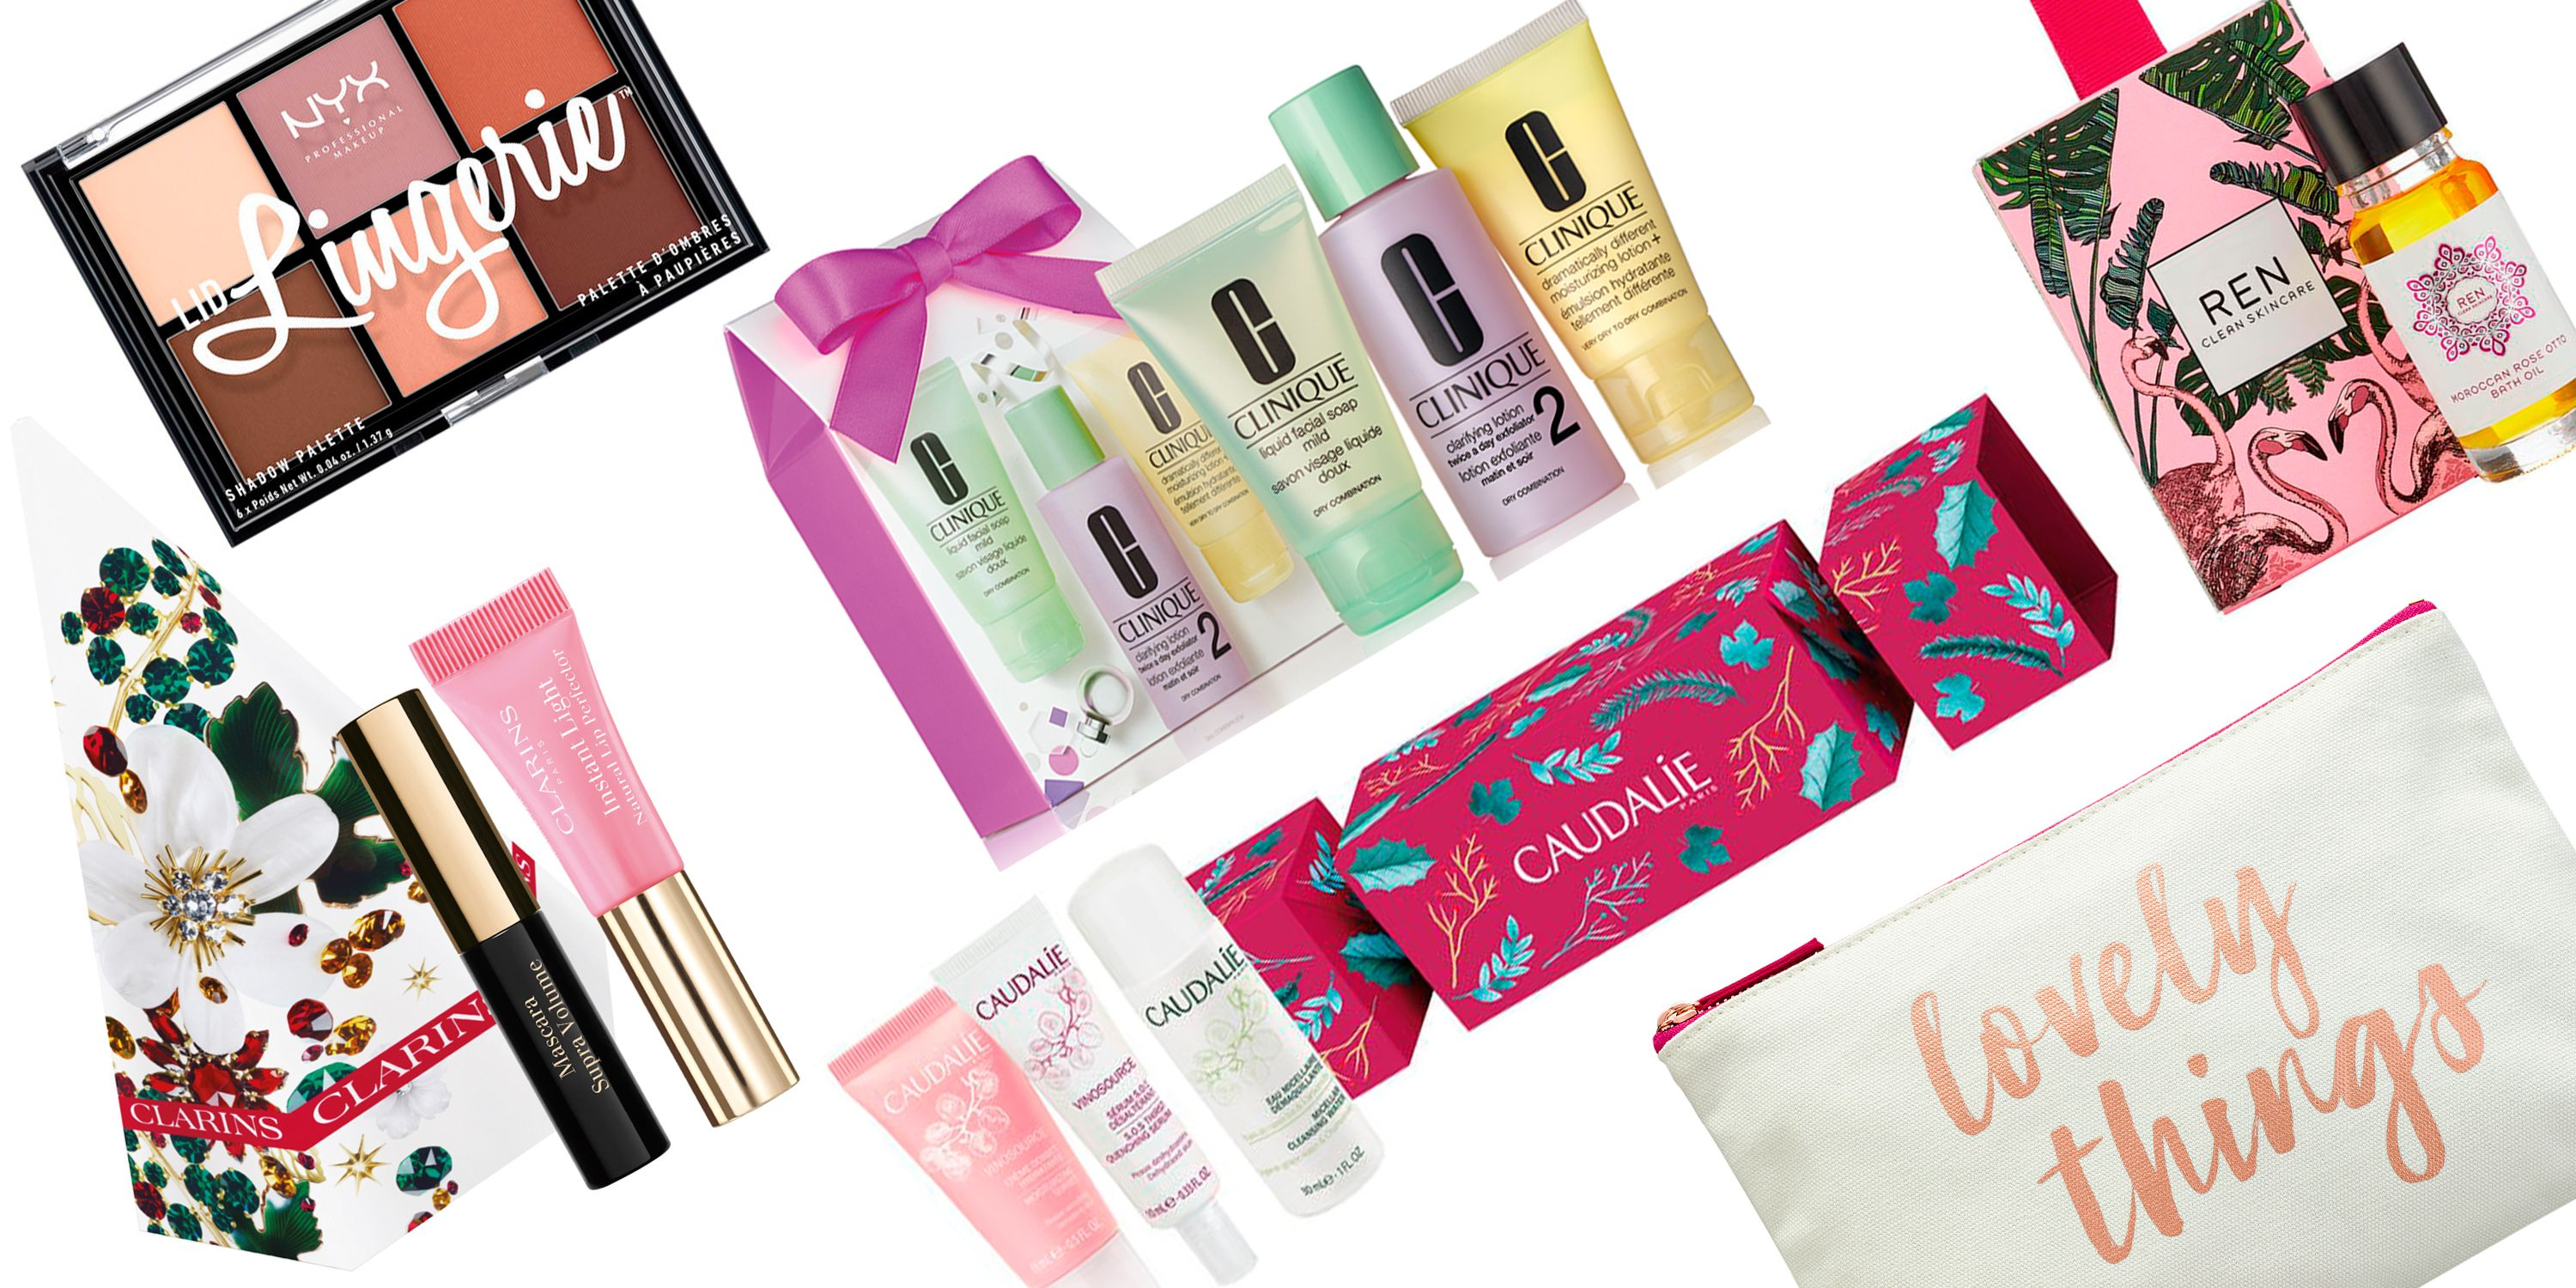 Christmas beauty gifts under £10: Cheap stocking fillers